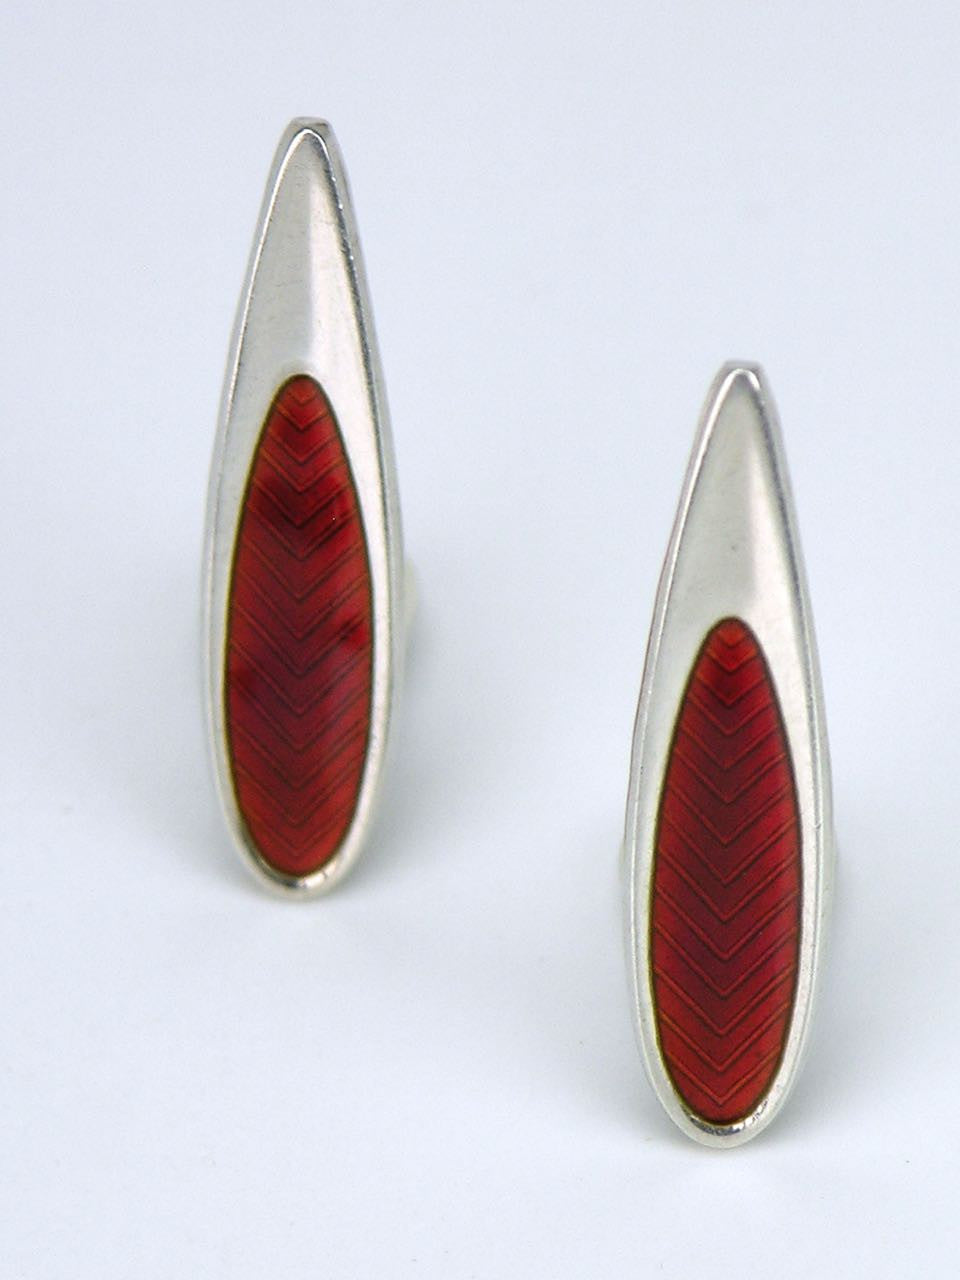 Danish silver and red enamel modernist clip earrings